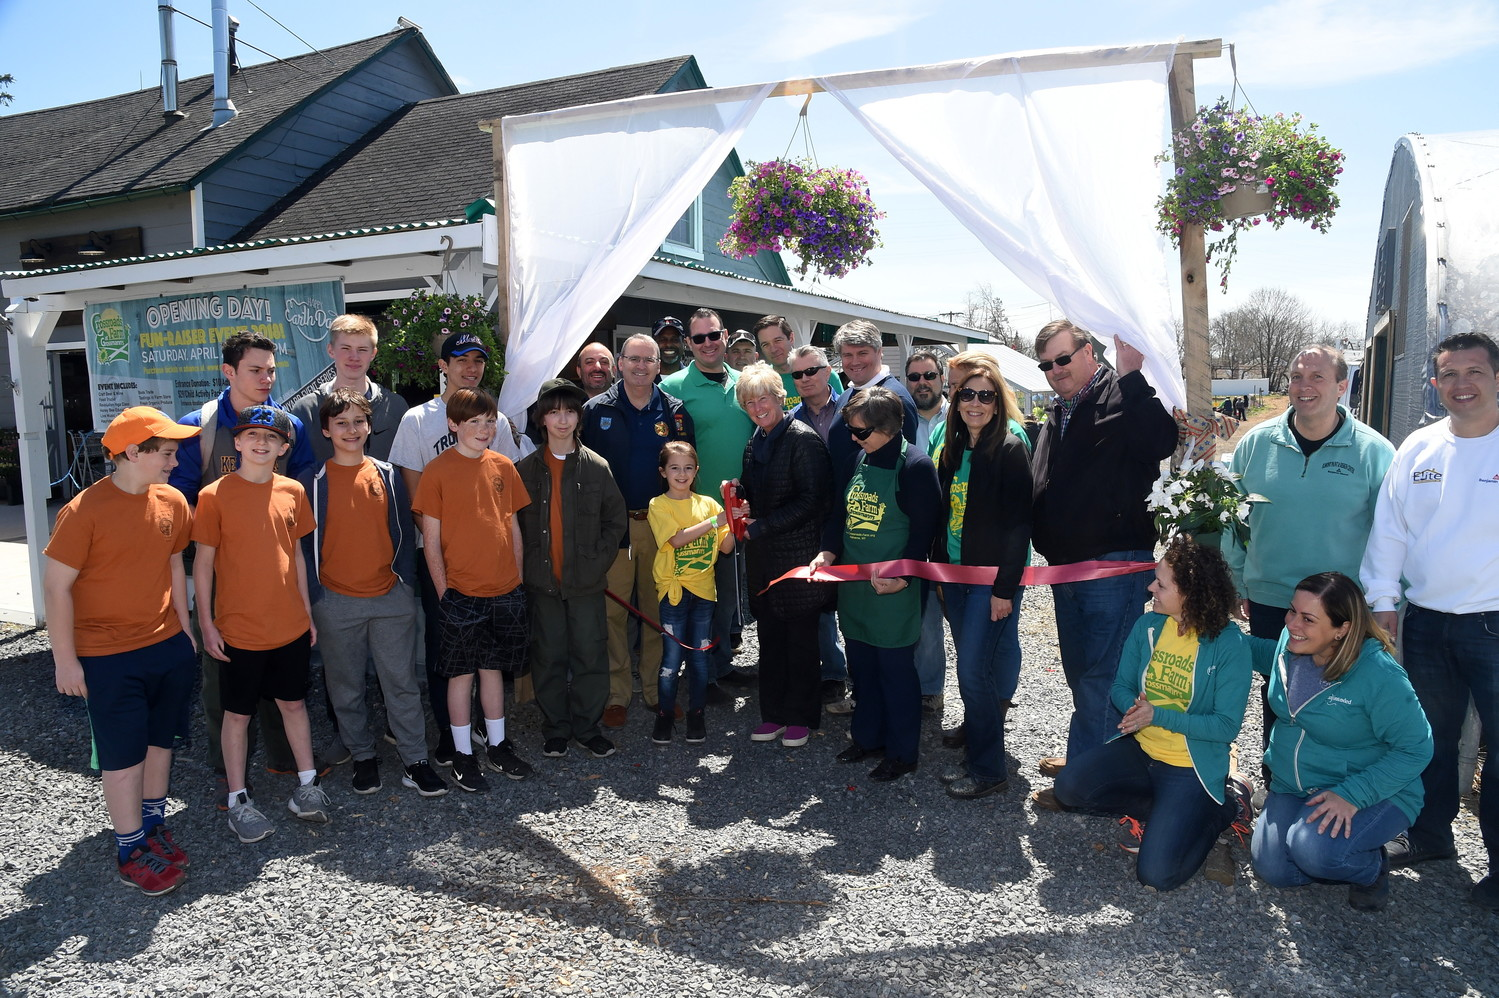 Malverne Mayor Patti Ann McDonald cut the ribbon to kick off the opening-day ceremony at Crossroads Farm on April 21.